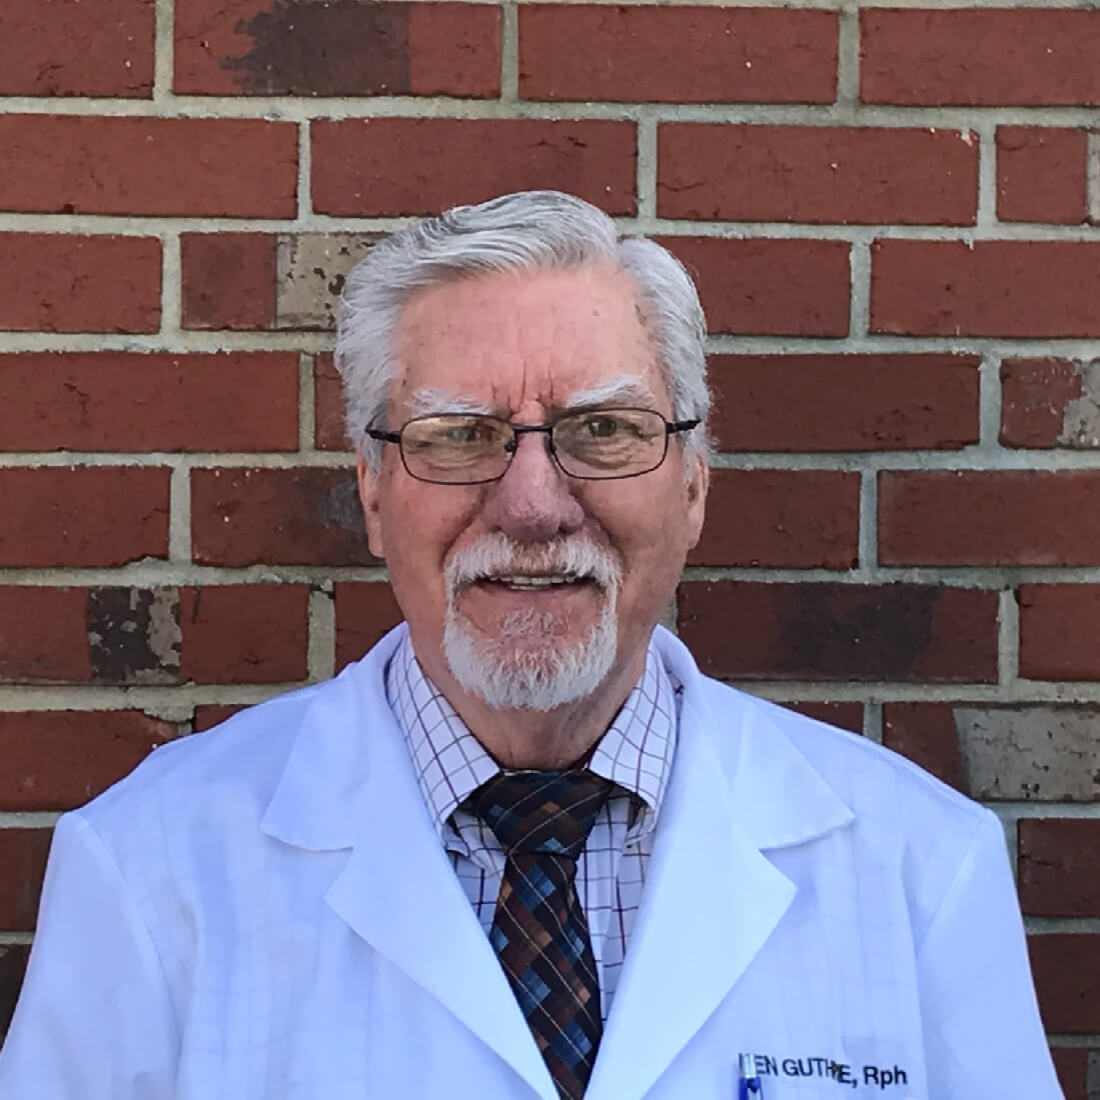 Ken Guthrie has worked at Lacey Drug Company for five years. He received his degree from the University of Georgia. Ken practices at all three pharmacy locations.